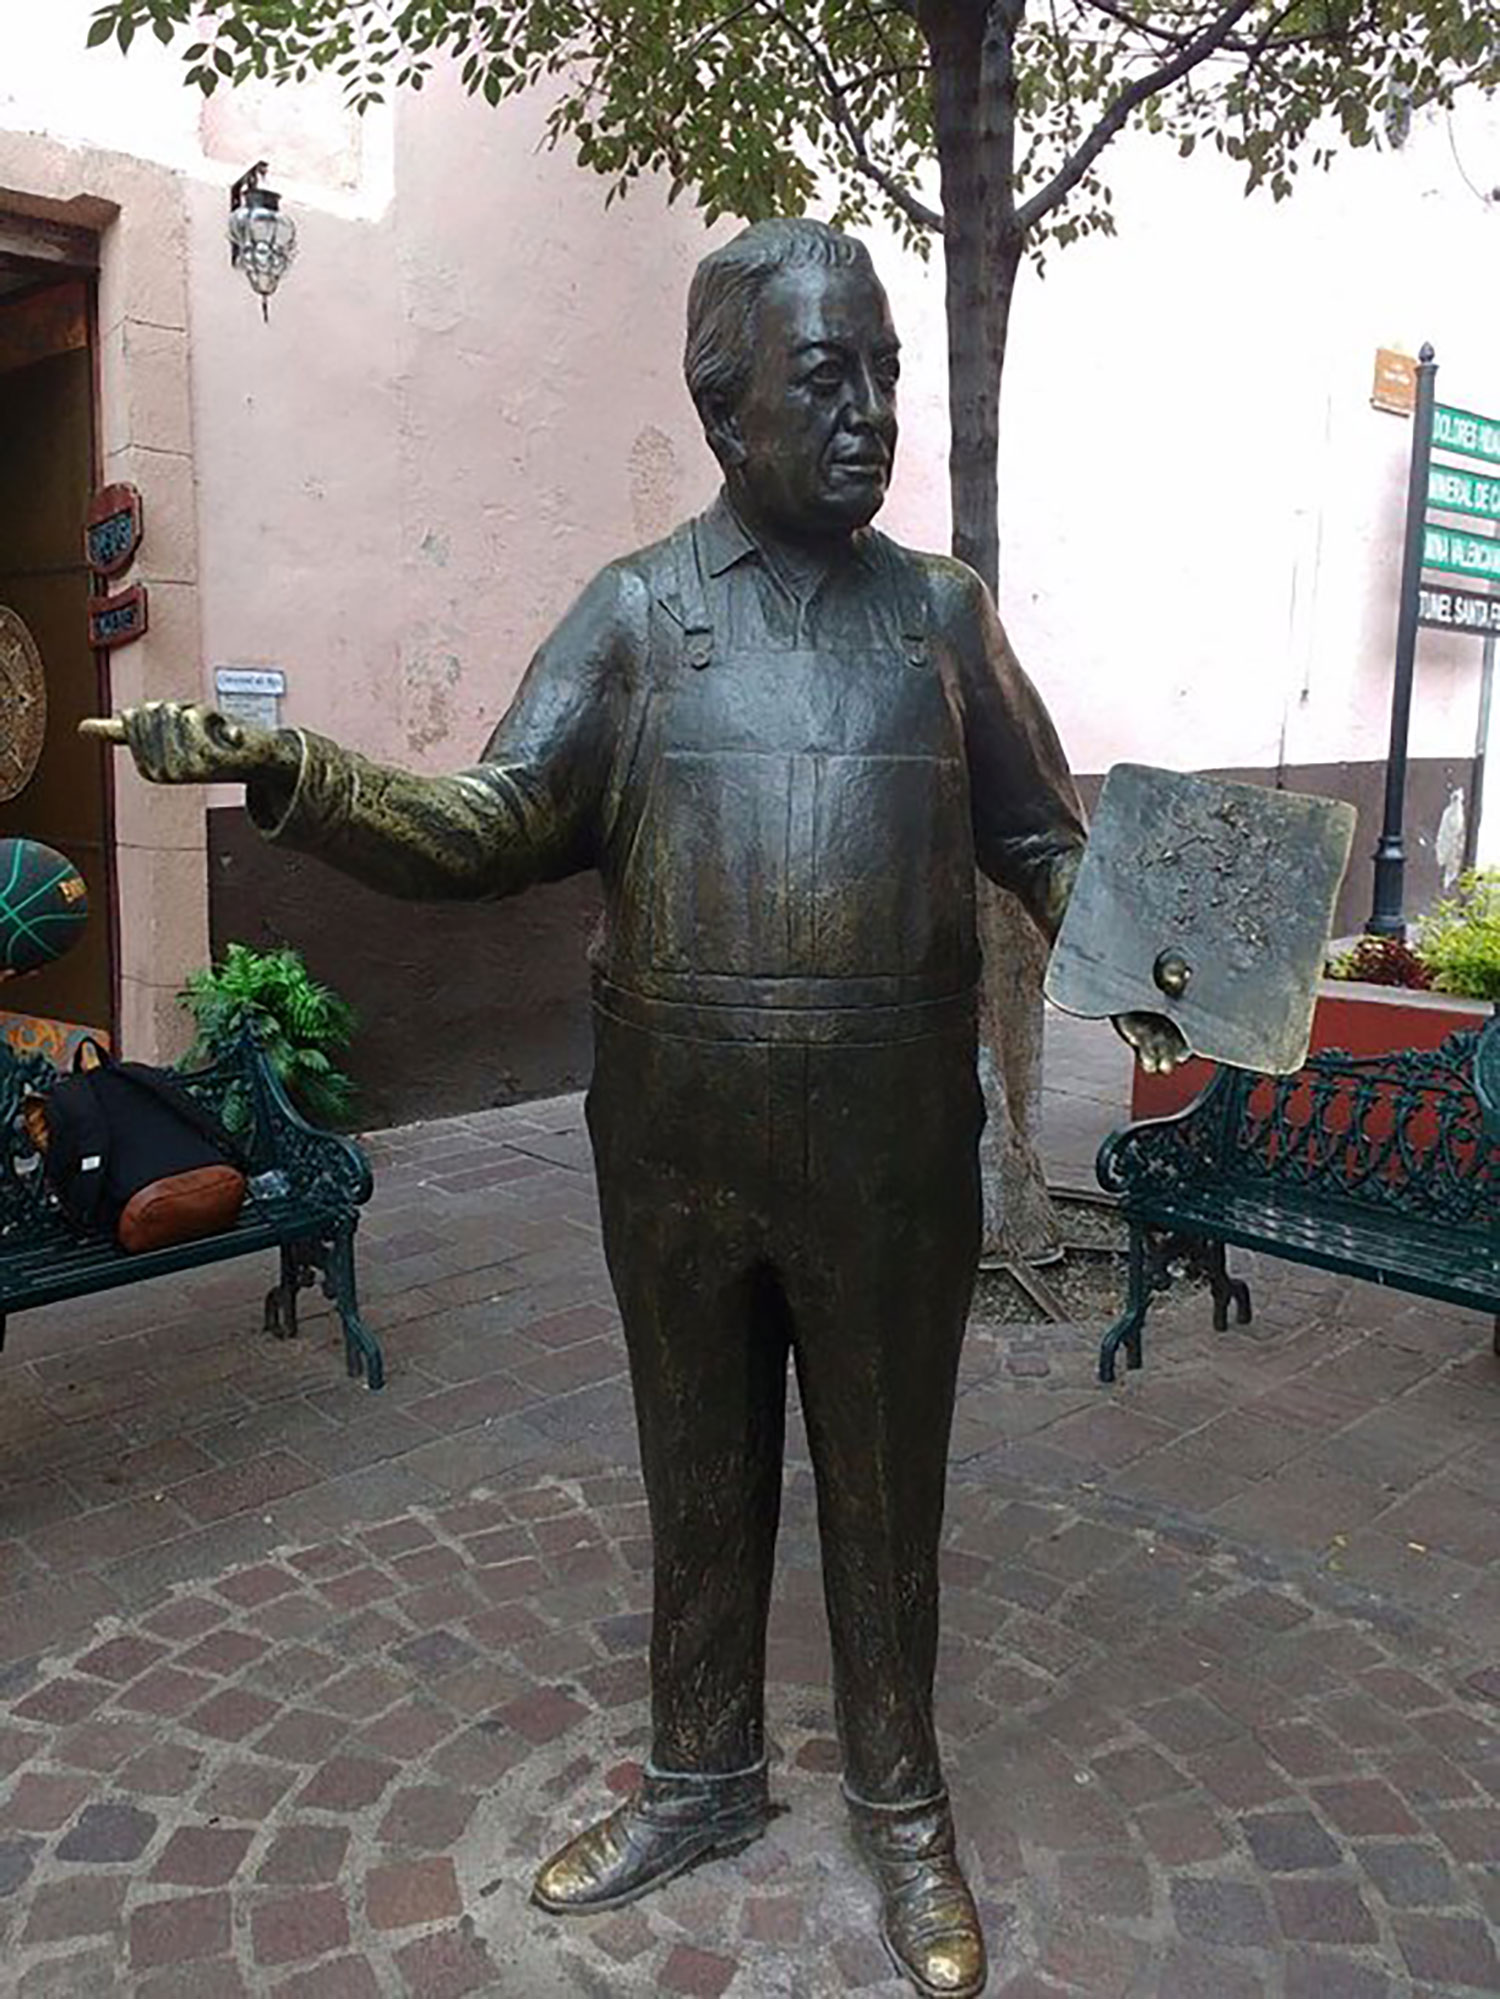 Diego's statue at the museum.